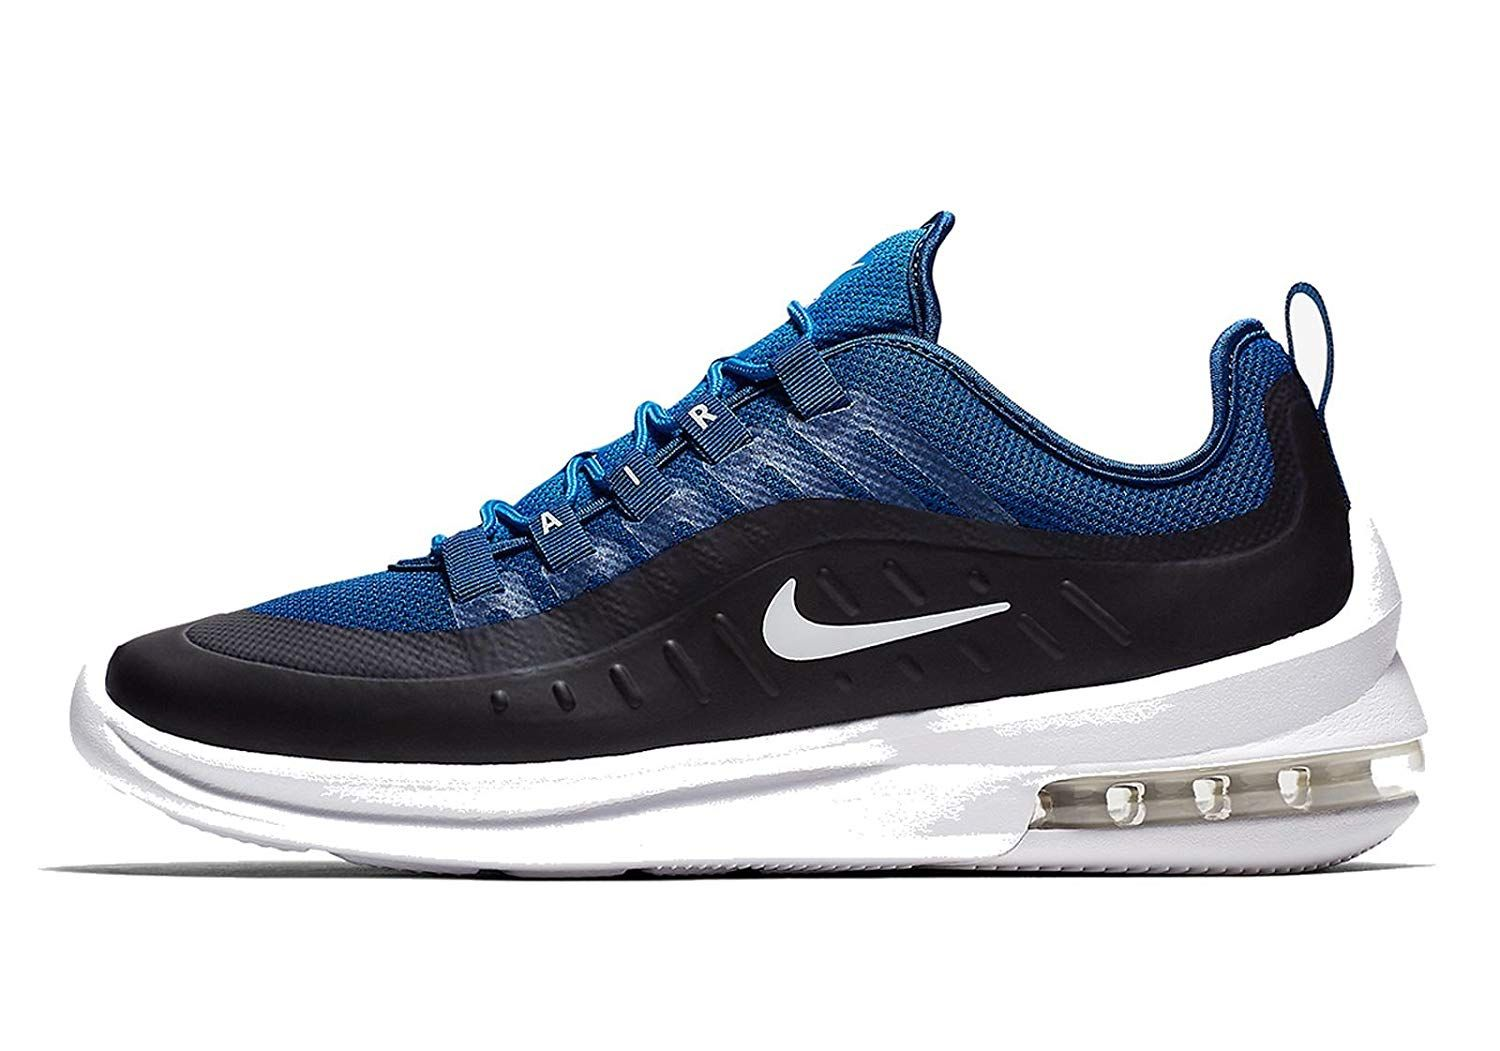 reputable site 4ed09 ea6ff Nike Men s Air Max Axis Gym Blue White Sneaker  Buy Online at Low Prices